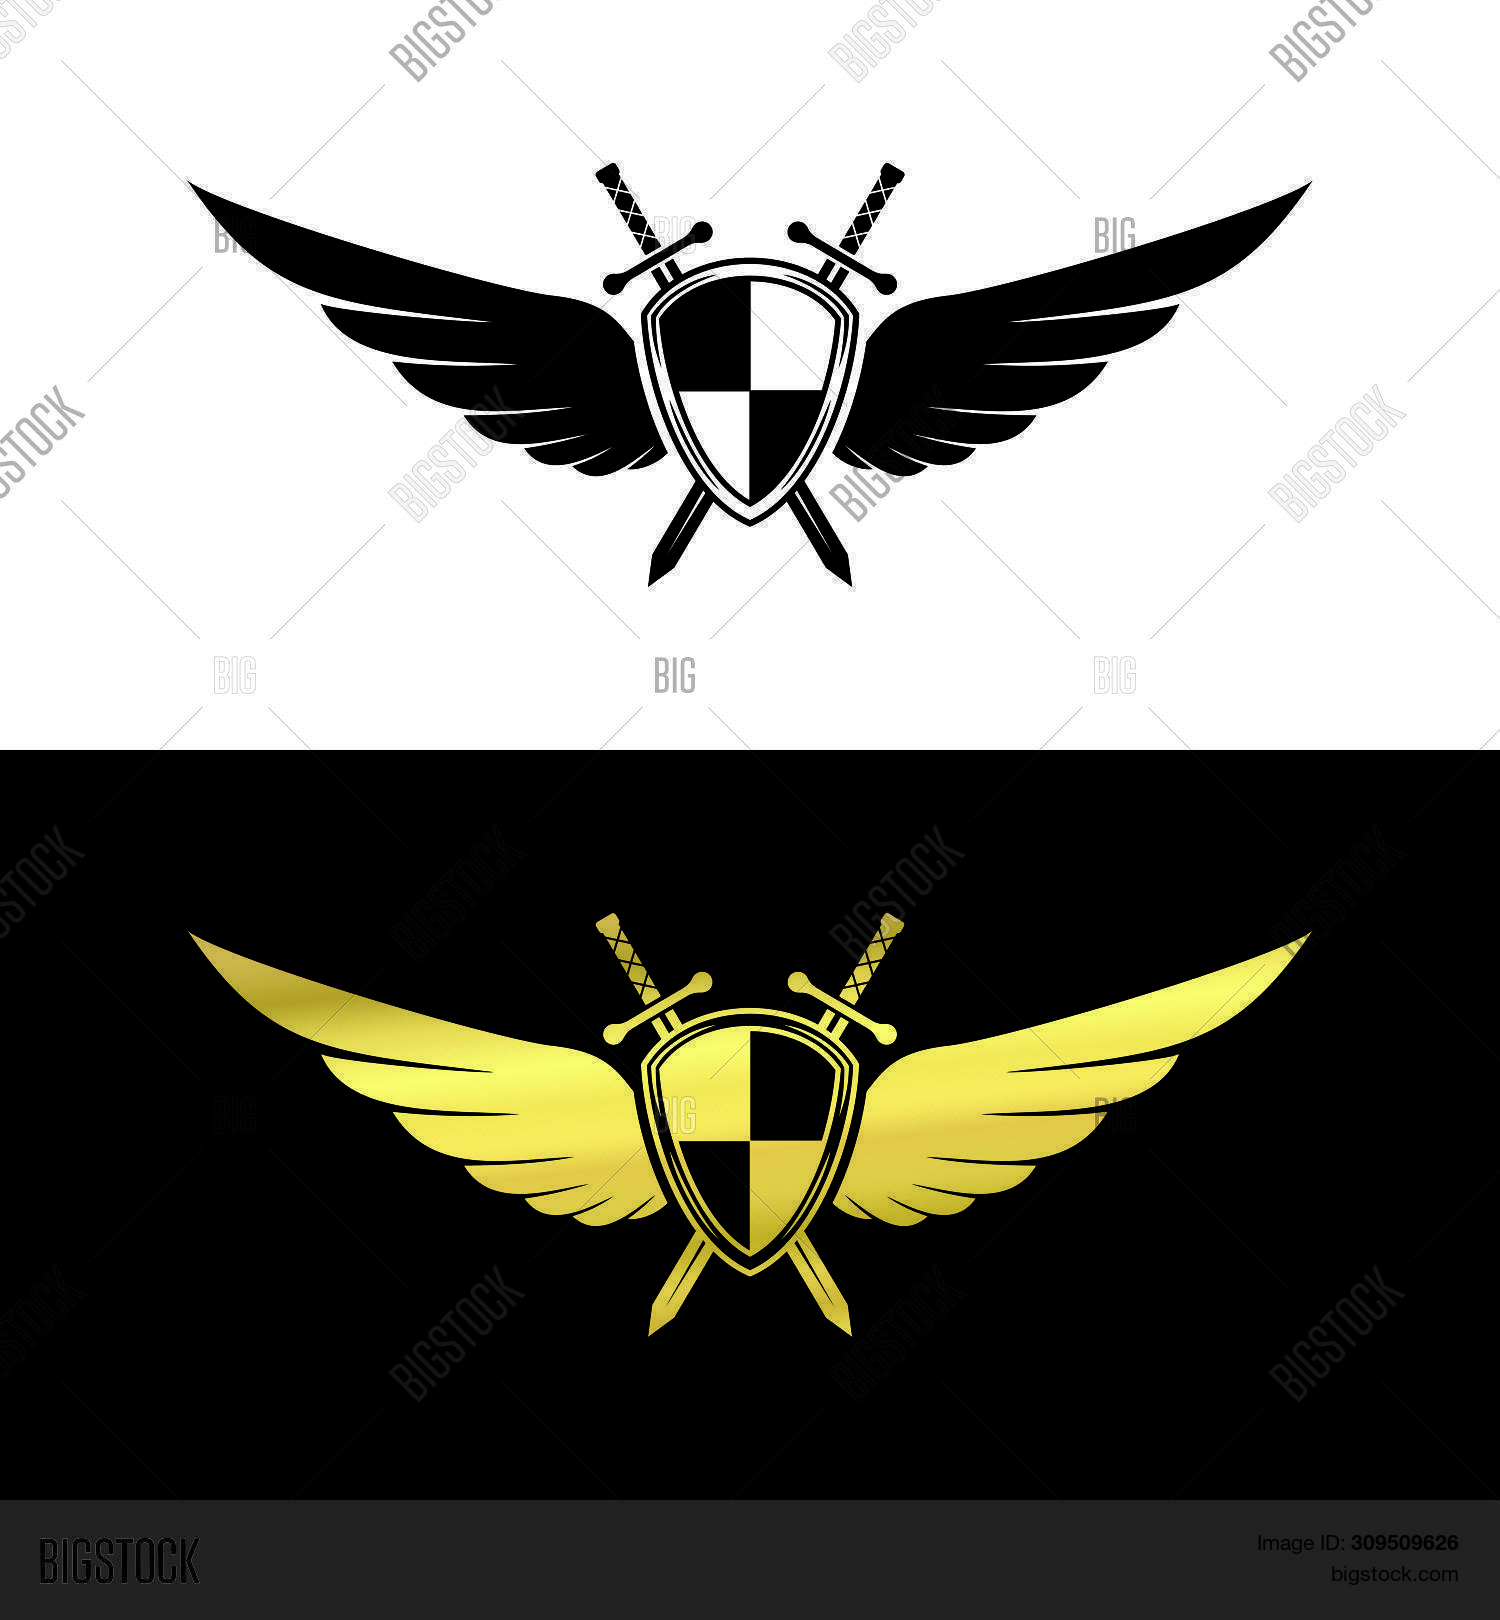 shield wing logo image photo free trial bigstock shield wing logo image photo free